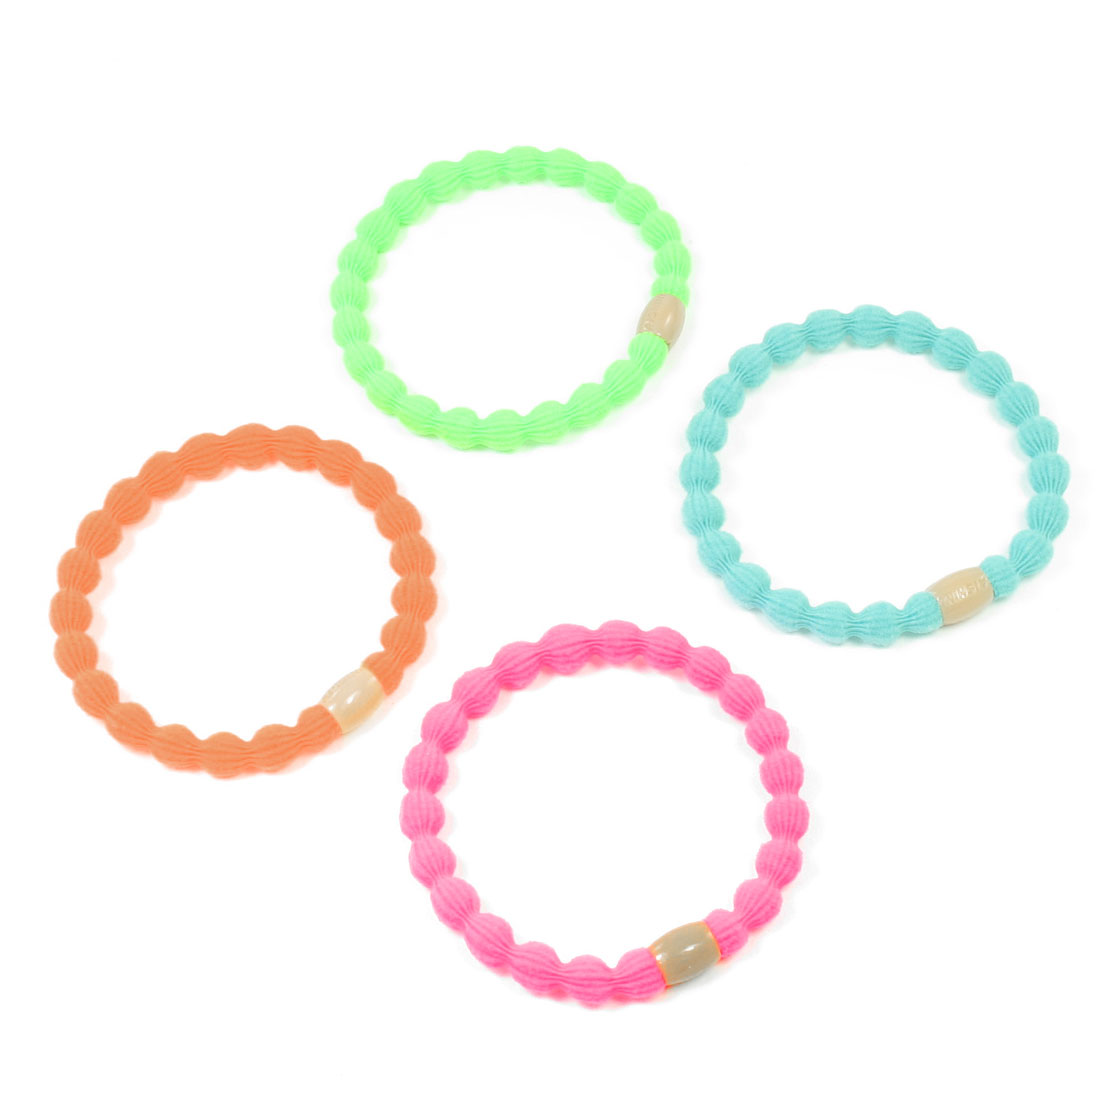 4 Pcs Orange Light Blue Round Elastic Ponytail Holder Hair Ties for Women